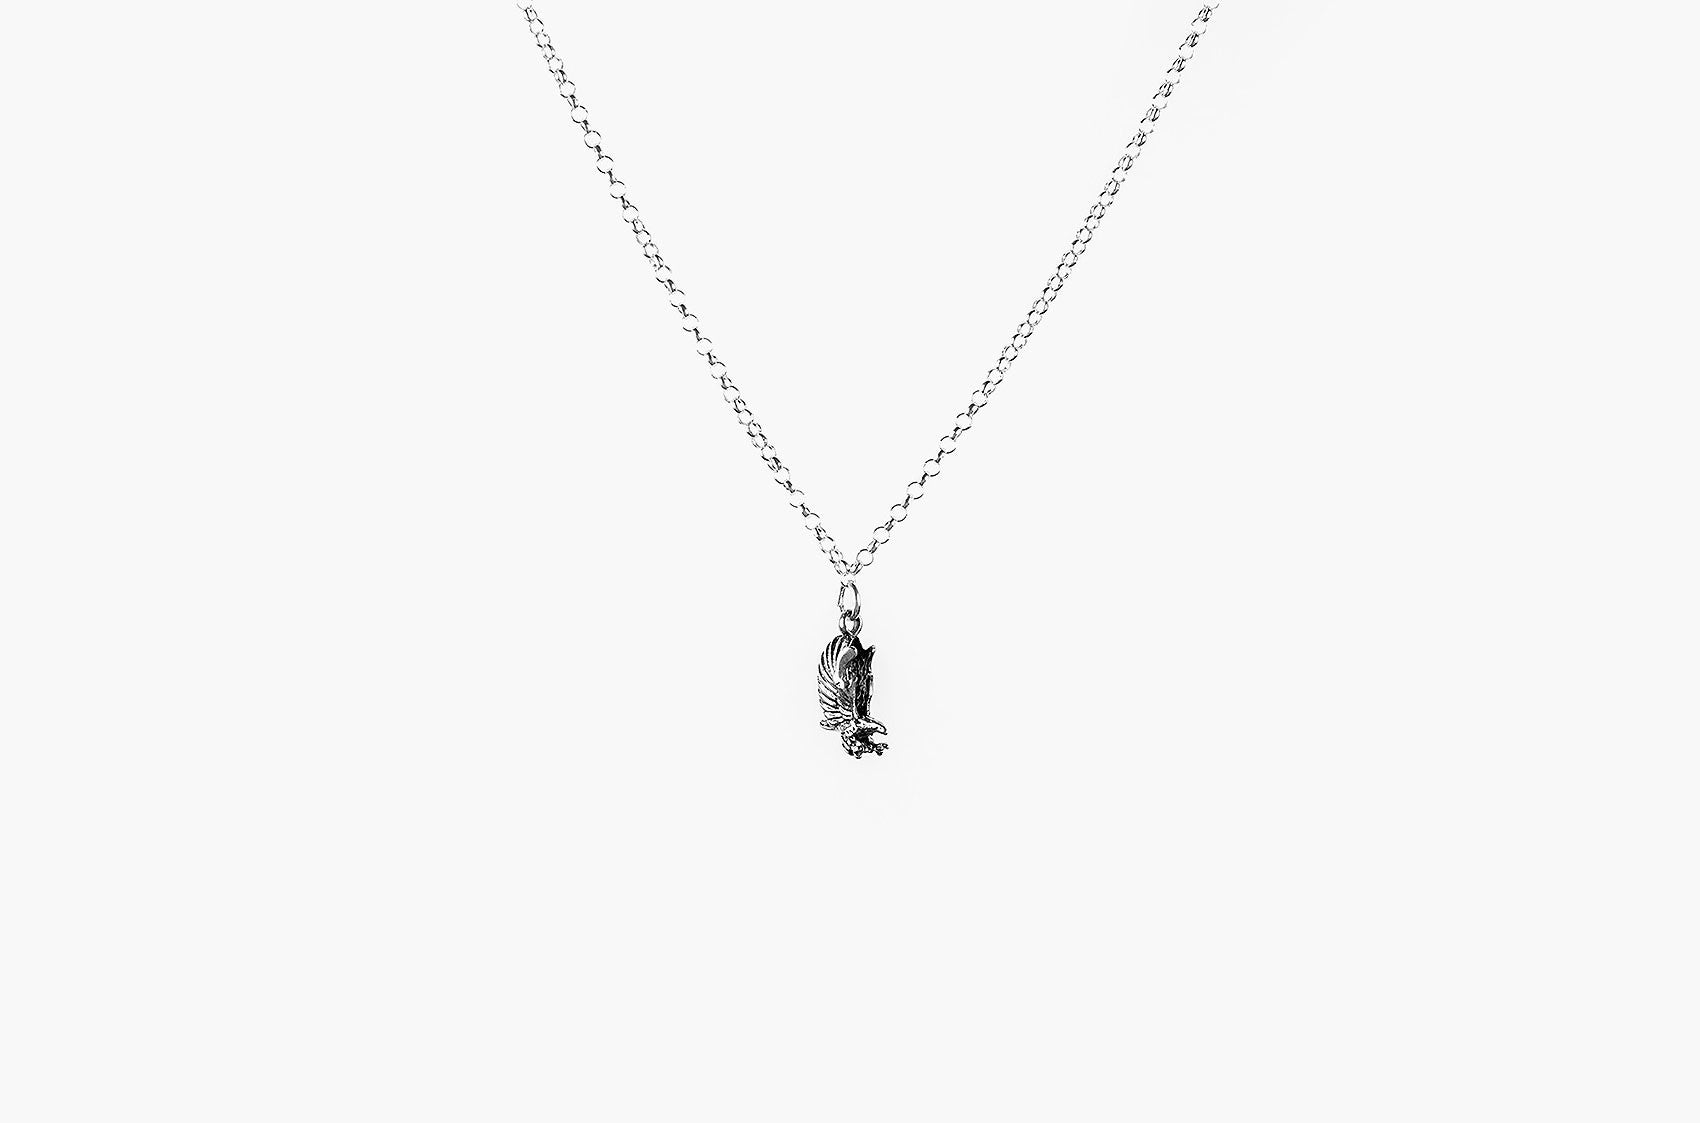 Prairie Pendant. Charm necklace in sterling silver